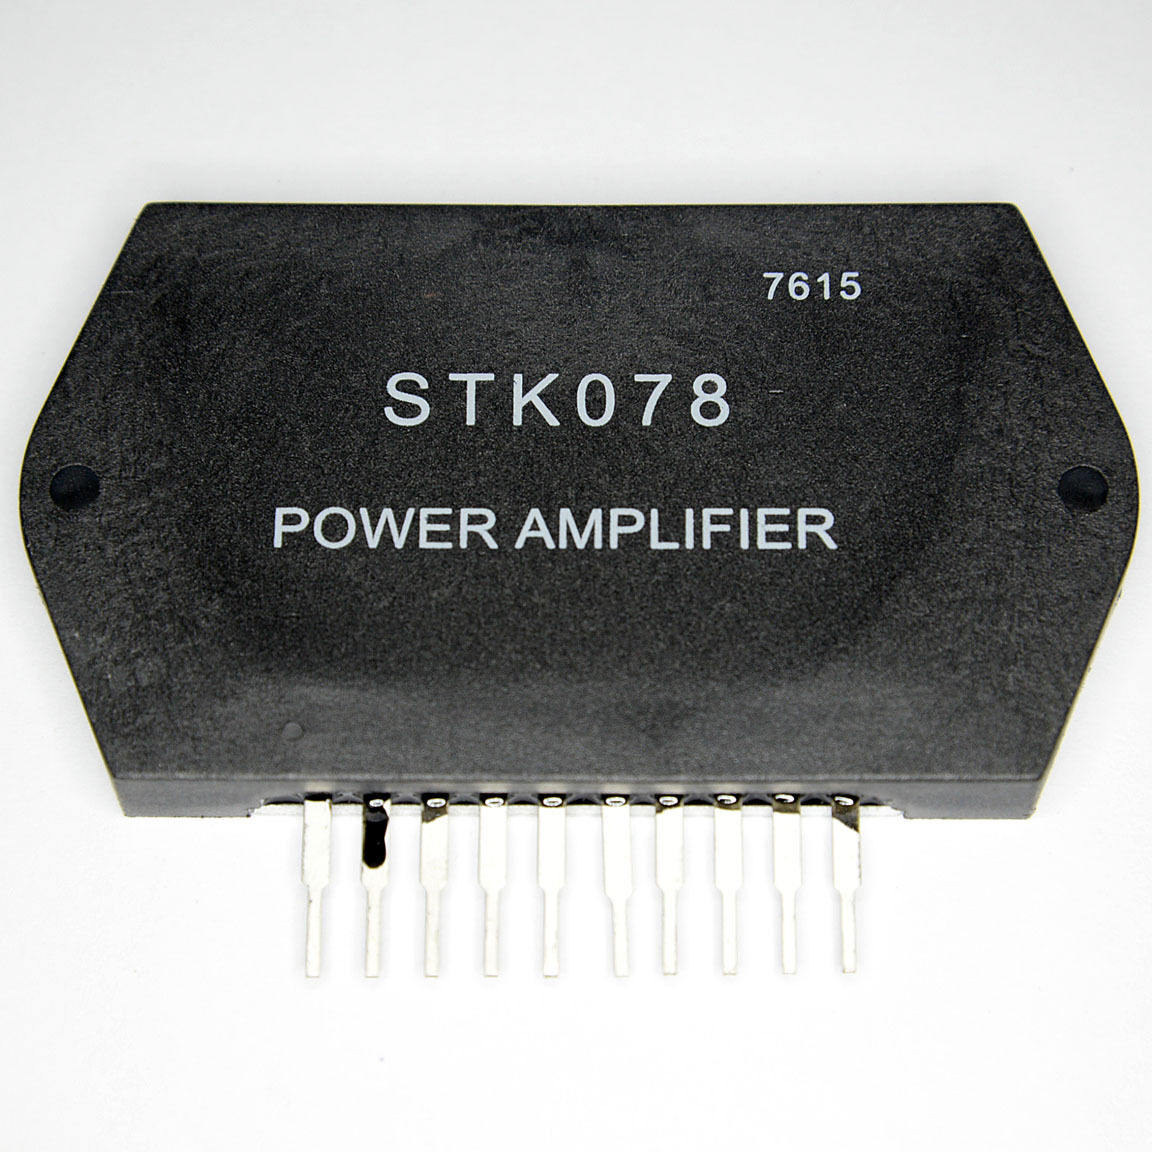 Stk078 Free Shipping Us Seller Integrated Circuit Ic Power Stereo Lm380 25 Watt Amplifier 1 Of 1free